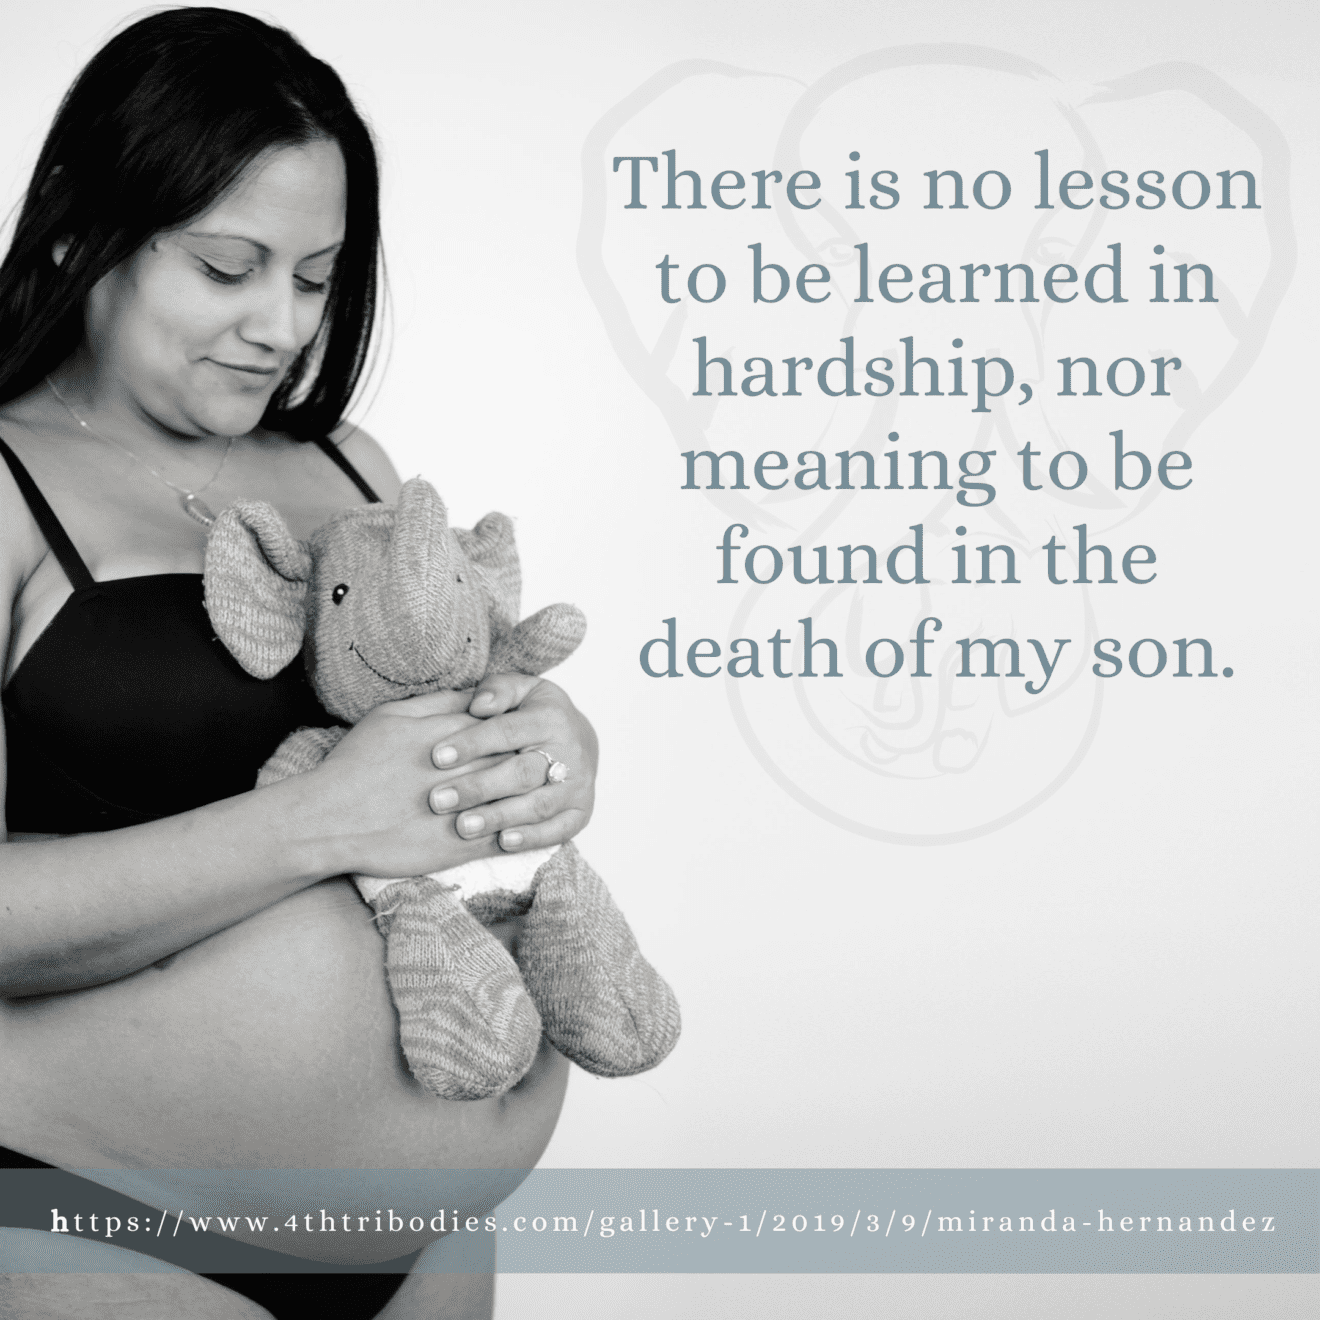 There is no lesson to be learned in hardship, nor meaning to be found in the death of my son.